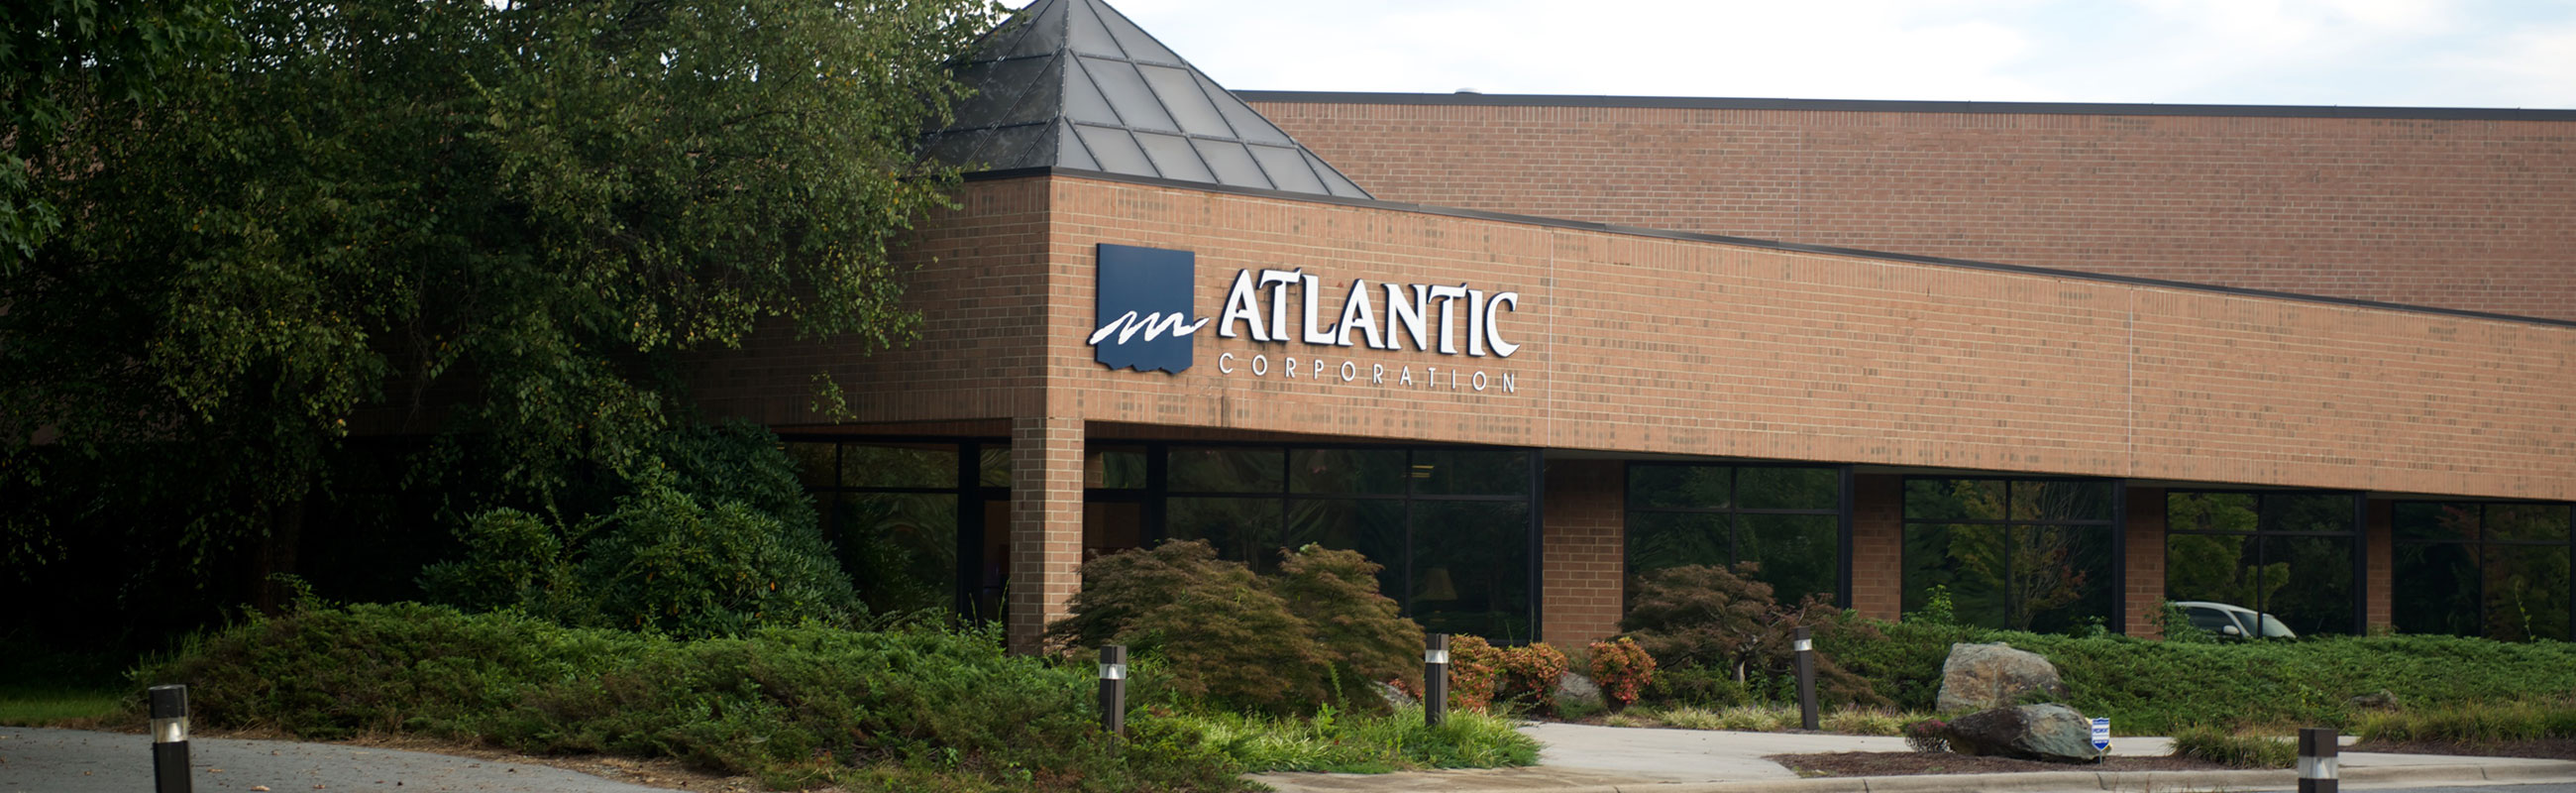 Greensboro atlantic branch exterior